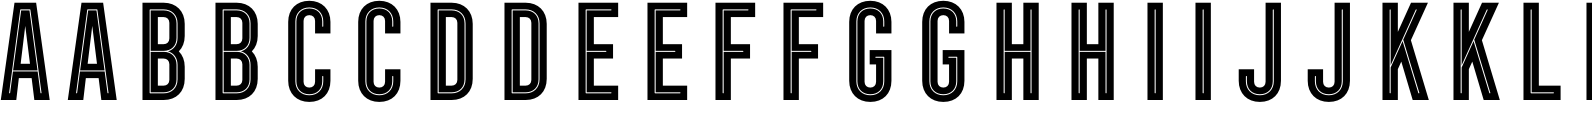 Frontage Condensed Inline Font